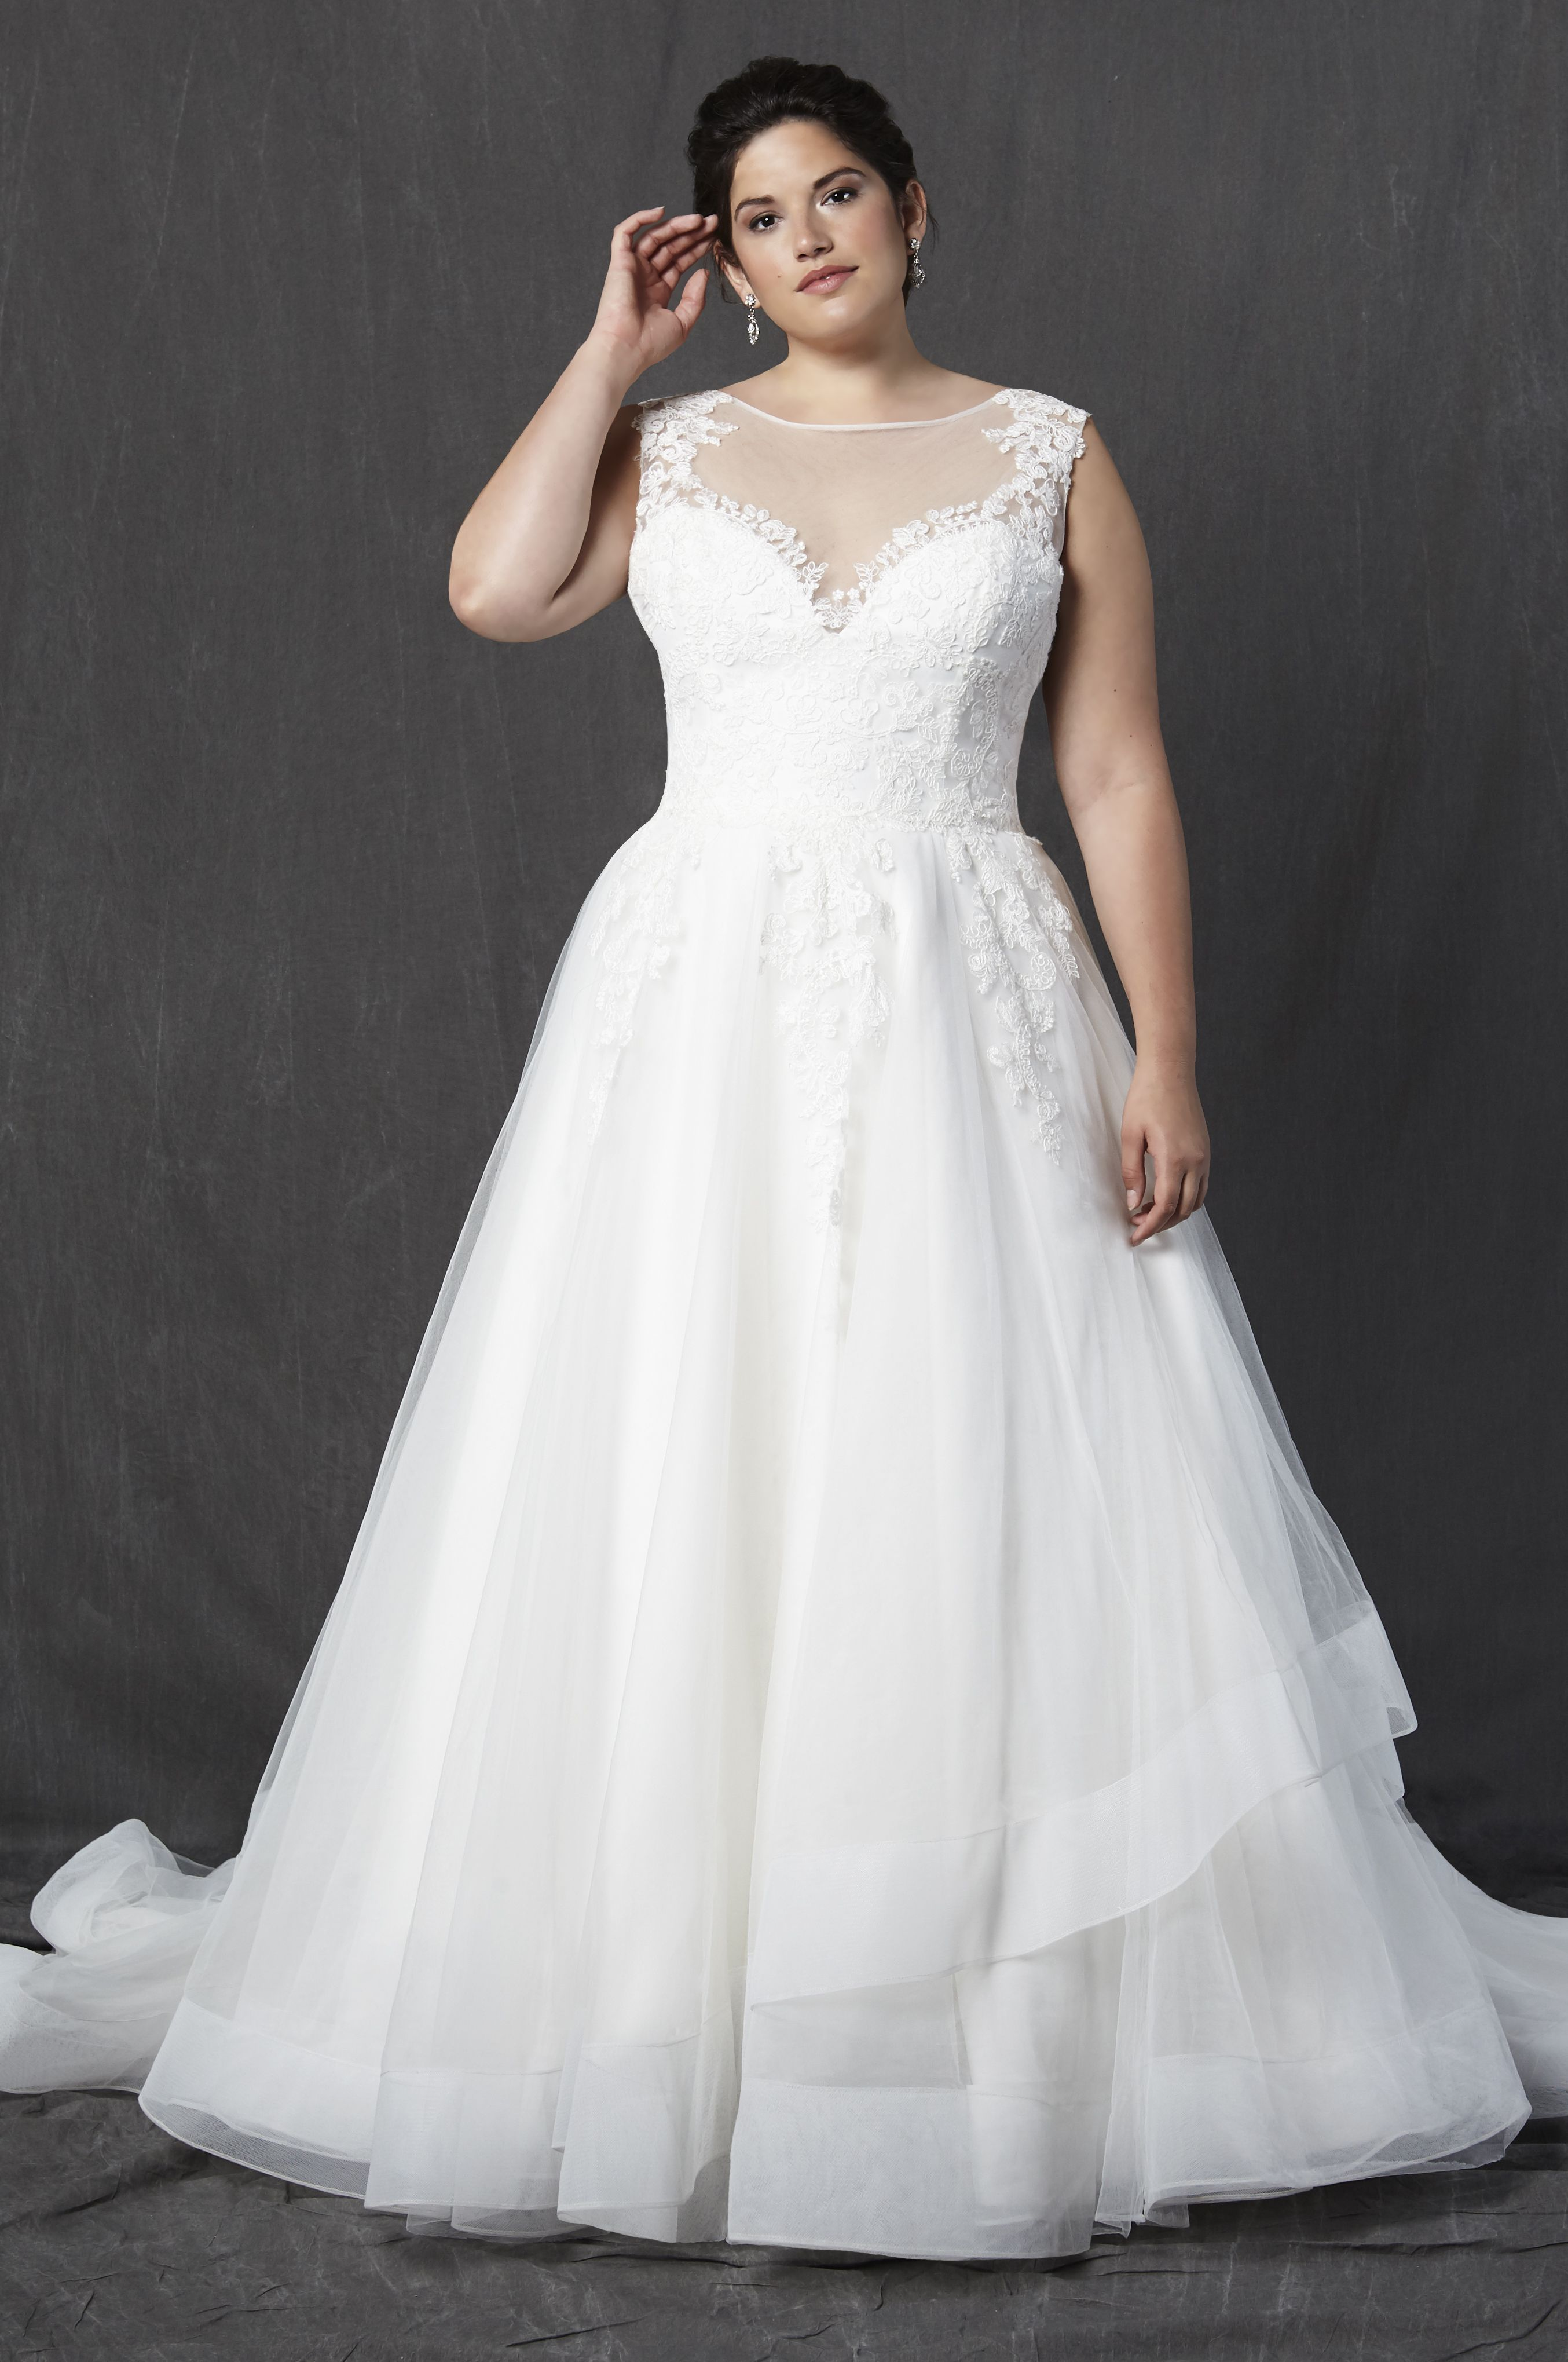 Ivory tulle and lace bridal gownbateau illusion neckline